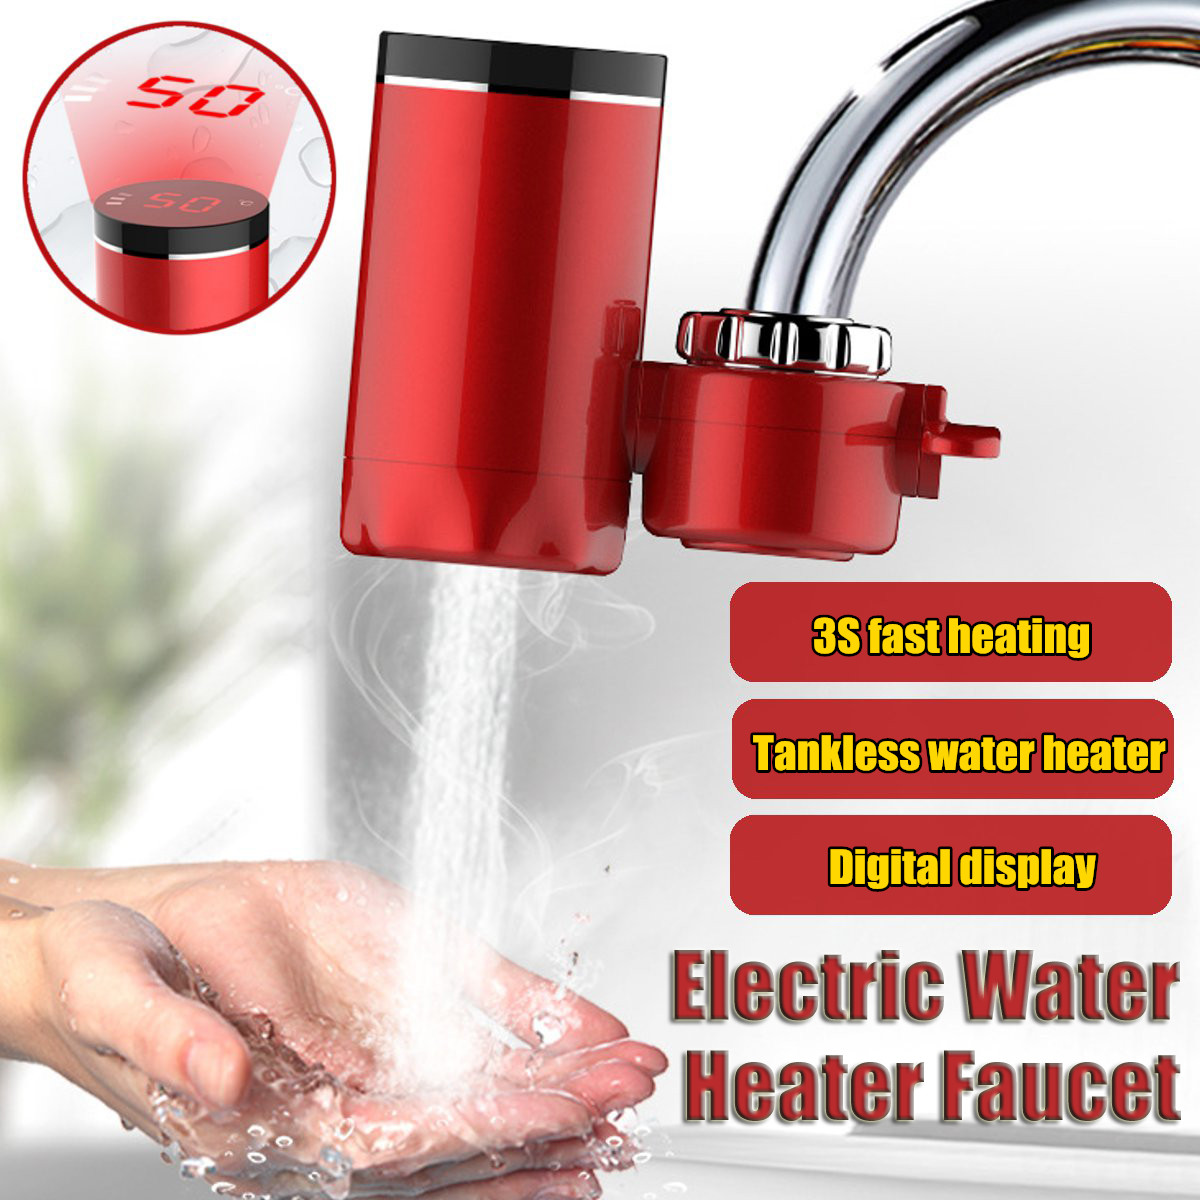 220V 3000W Instant Electric Faucet Tap Hot Water Heater LCD Display Bathroom Kitchen Hot Cold Mixer 3s Fast Heating Water Tap